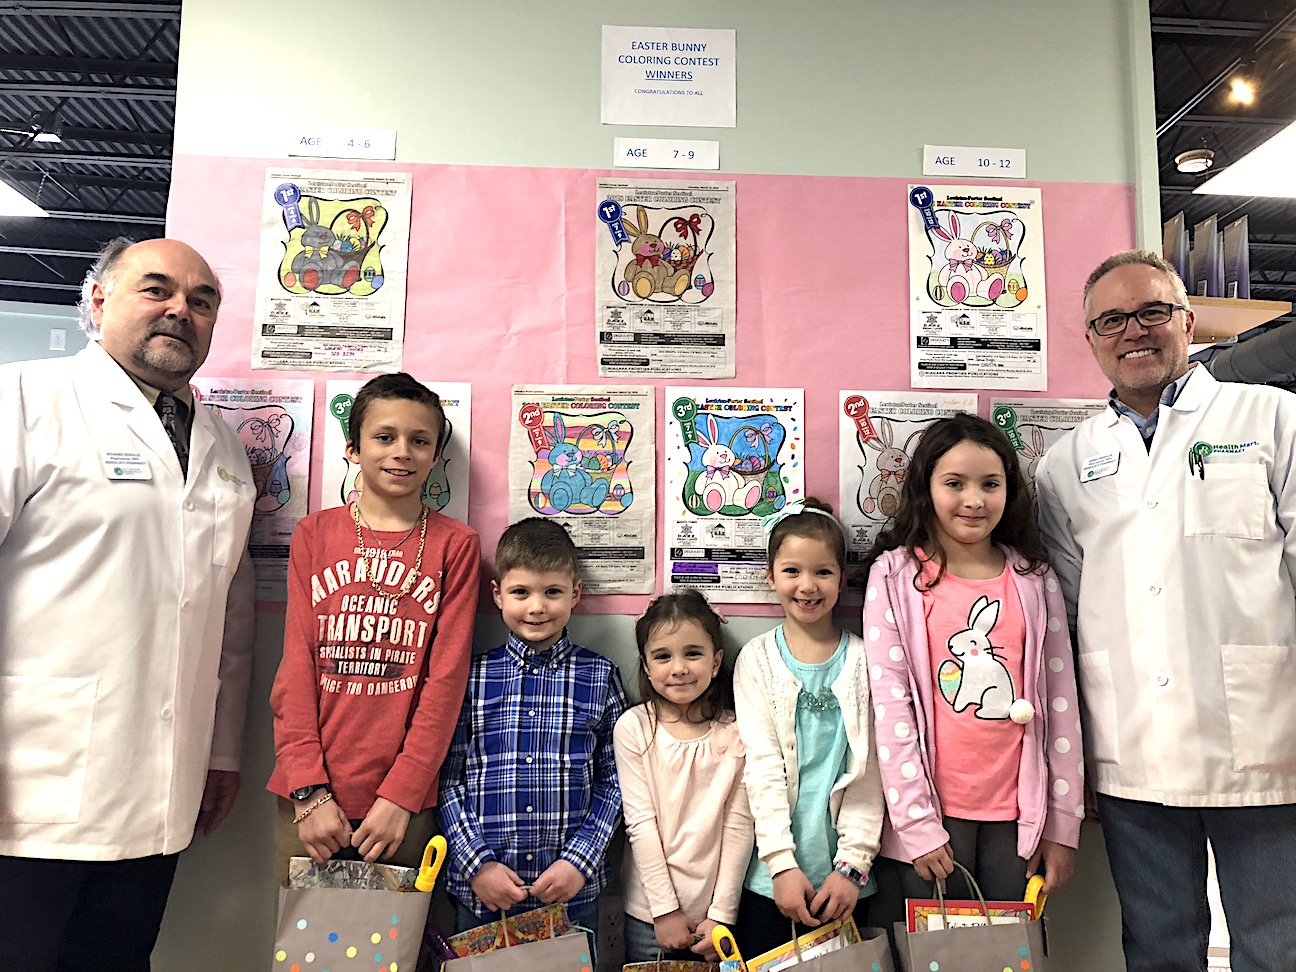 The DeGiulio brothers stand with a collection of coloring contest winners on Saturday.